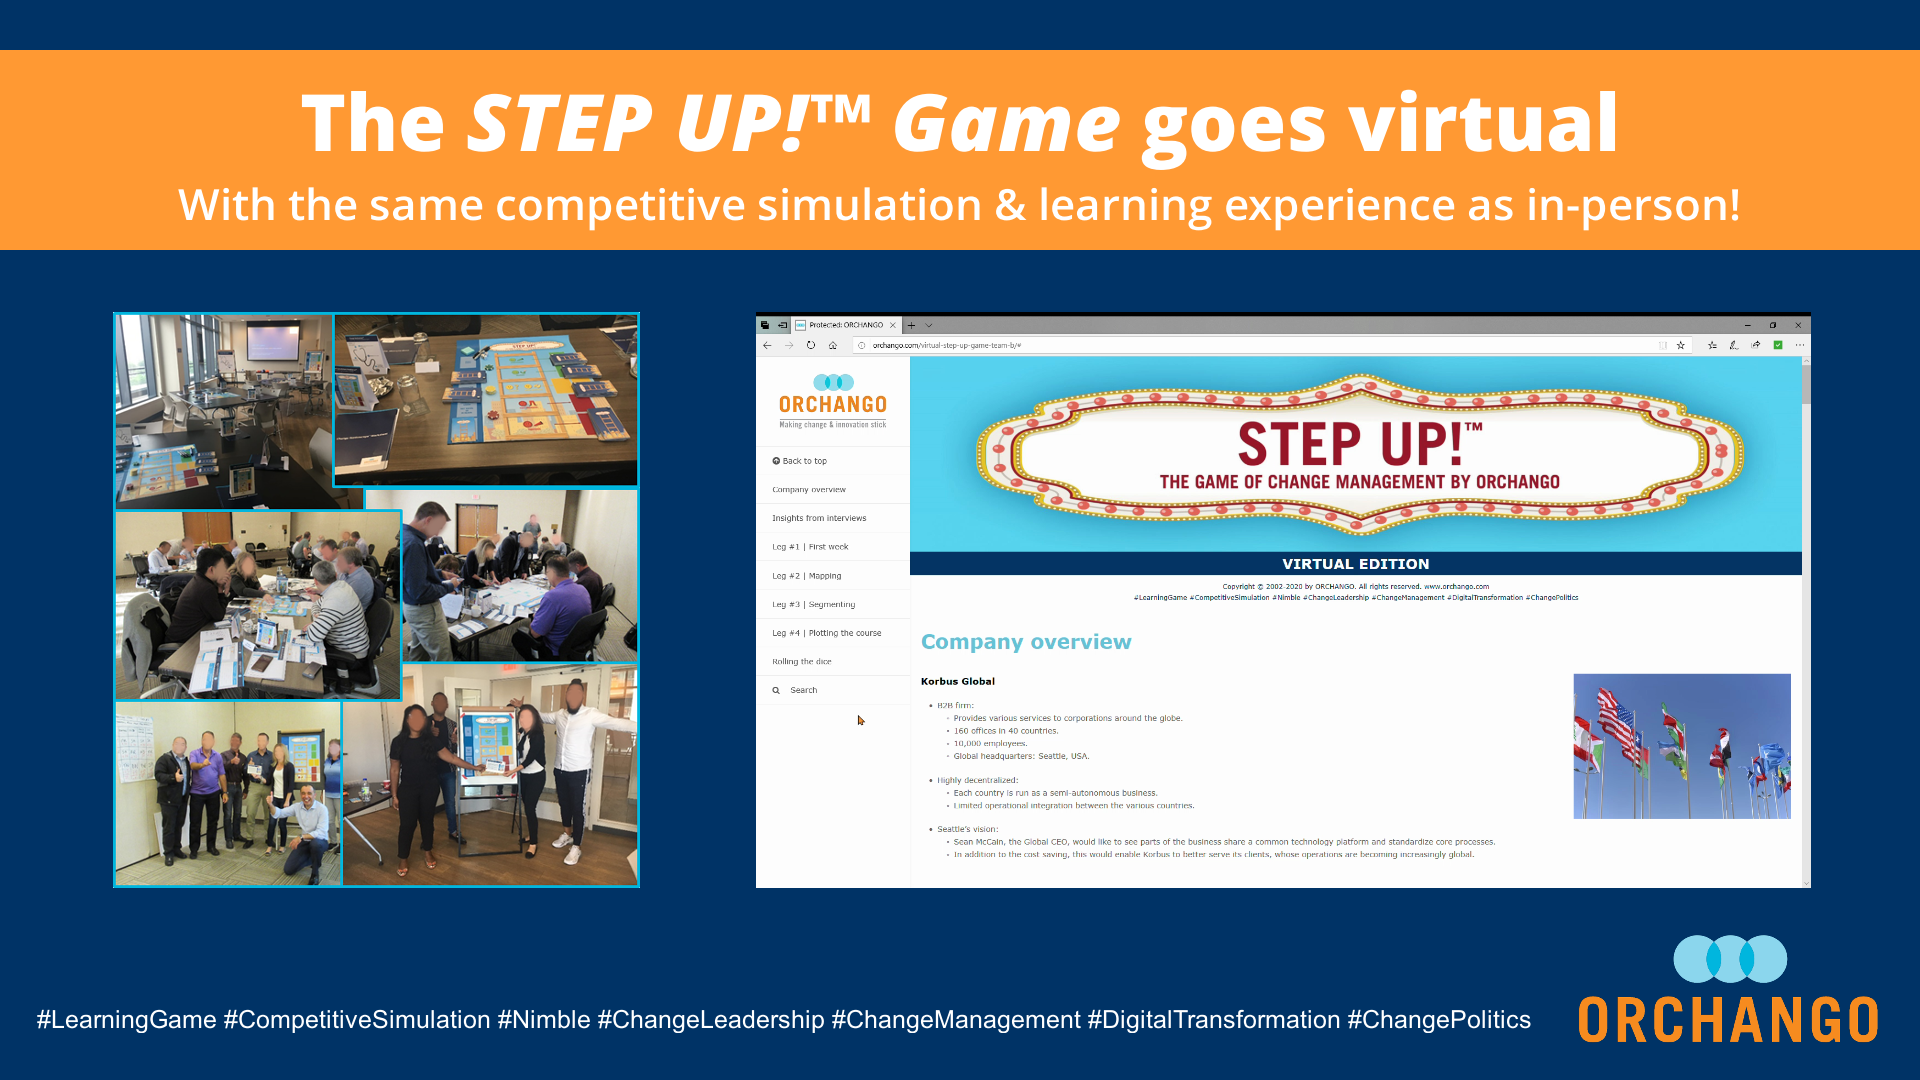 Our STEP UP!™ Game Simulation Goes Virtual!!